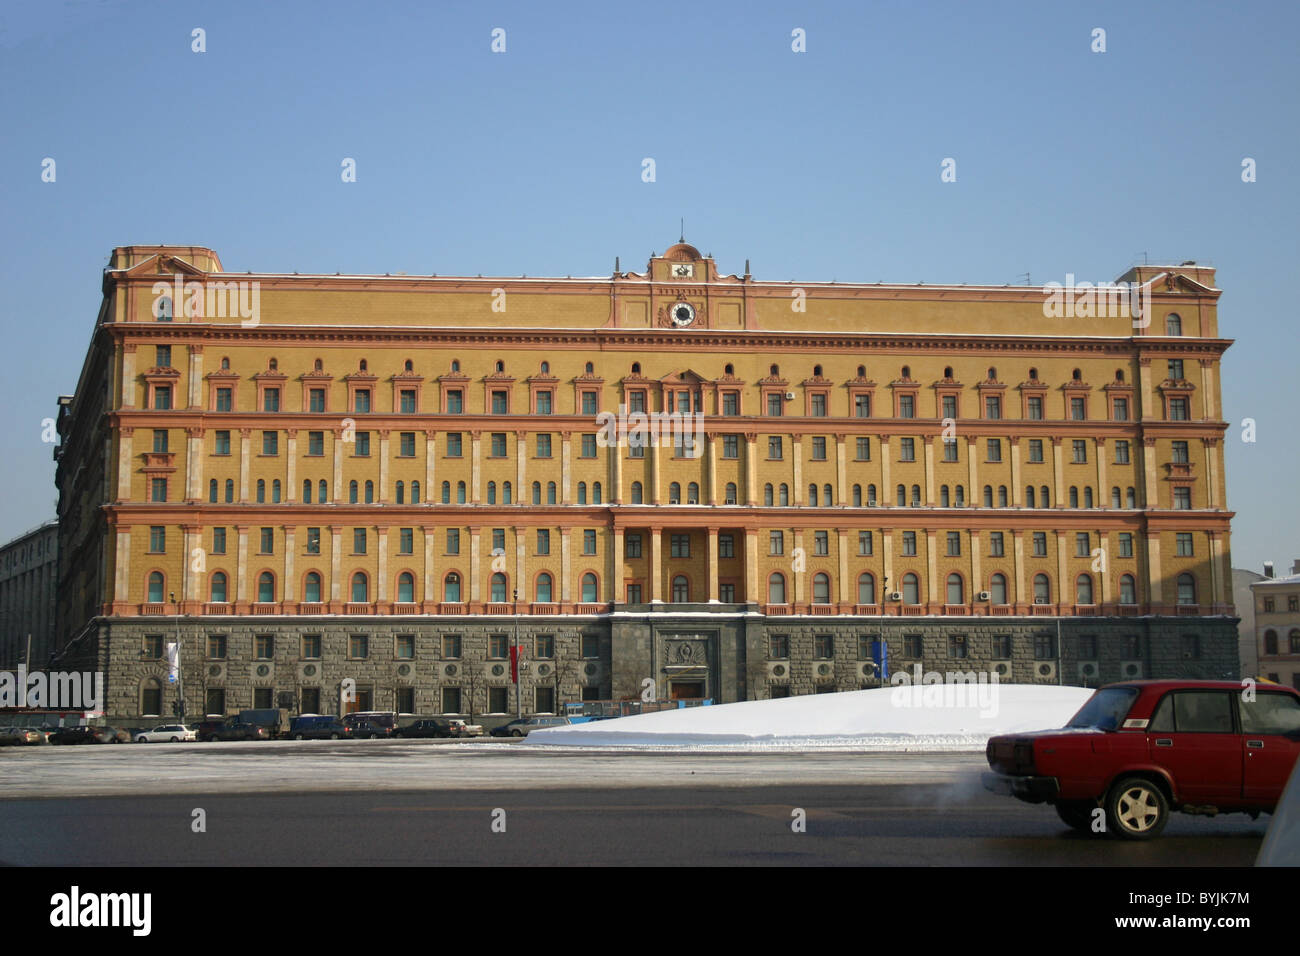 The Lubyanka is the popular name for the headquarters of the KGB in Moscow, Russia Stock Photo